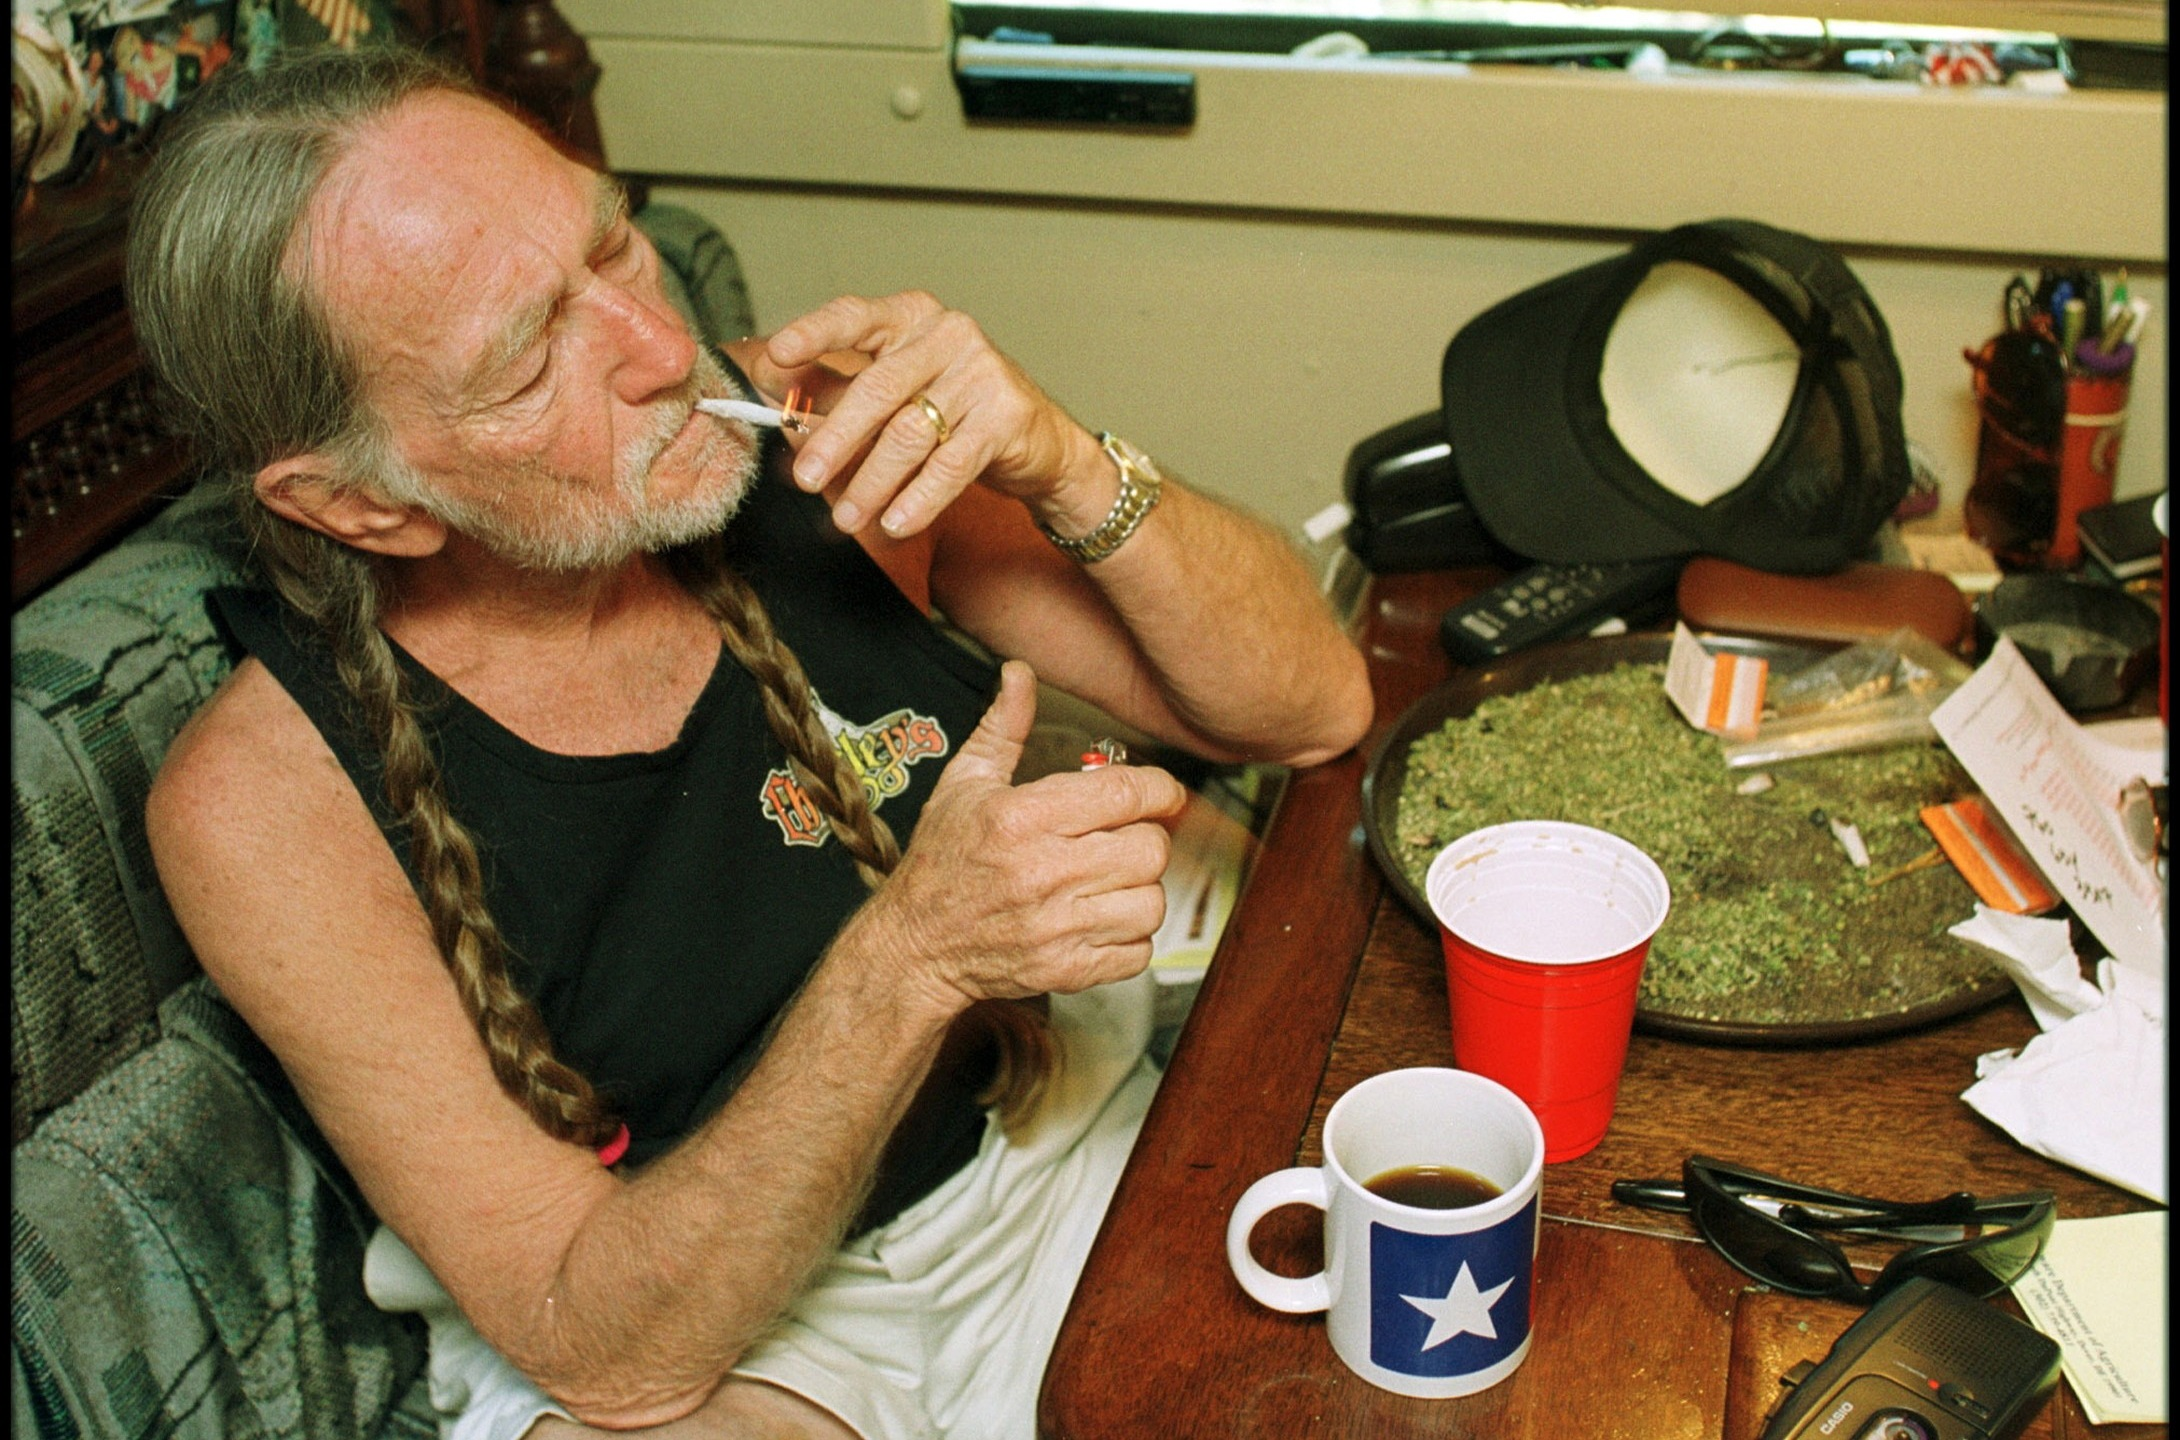 American country singer Willie Nelson takes a drag off a joint while relaxing at his home in Texas during the early 2000s. (Liaison/Getty Images)